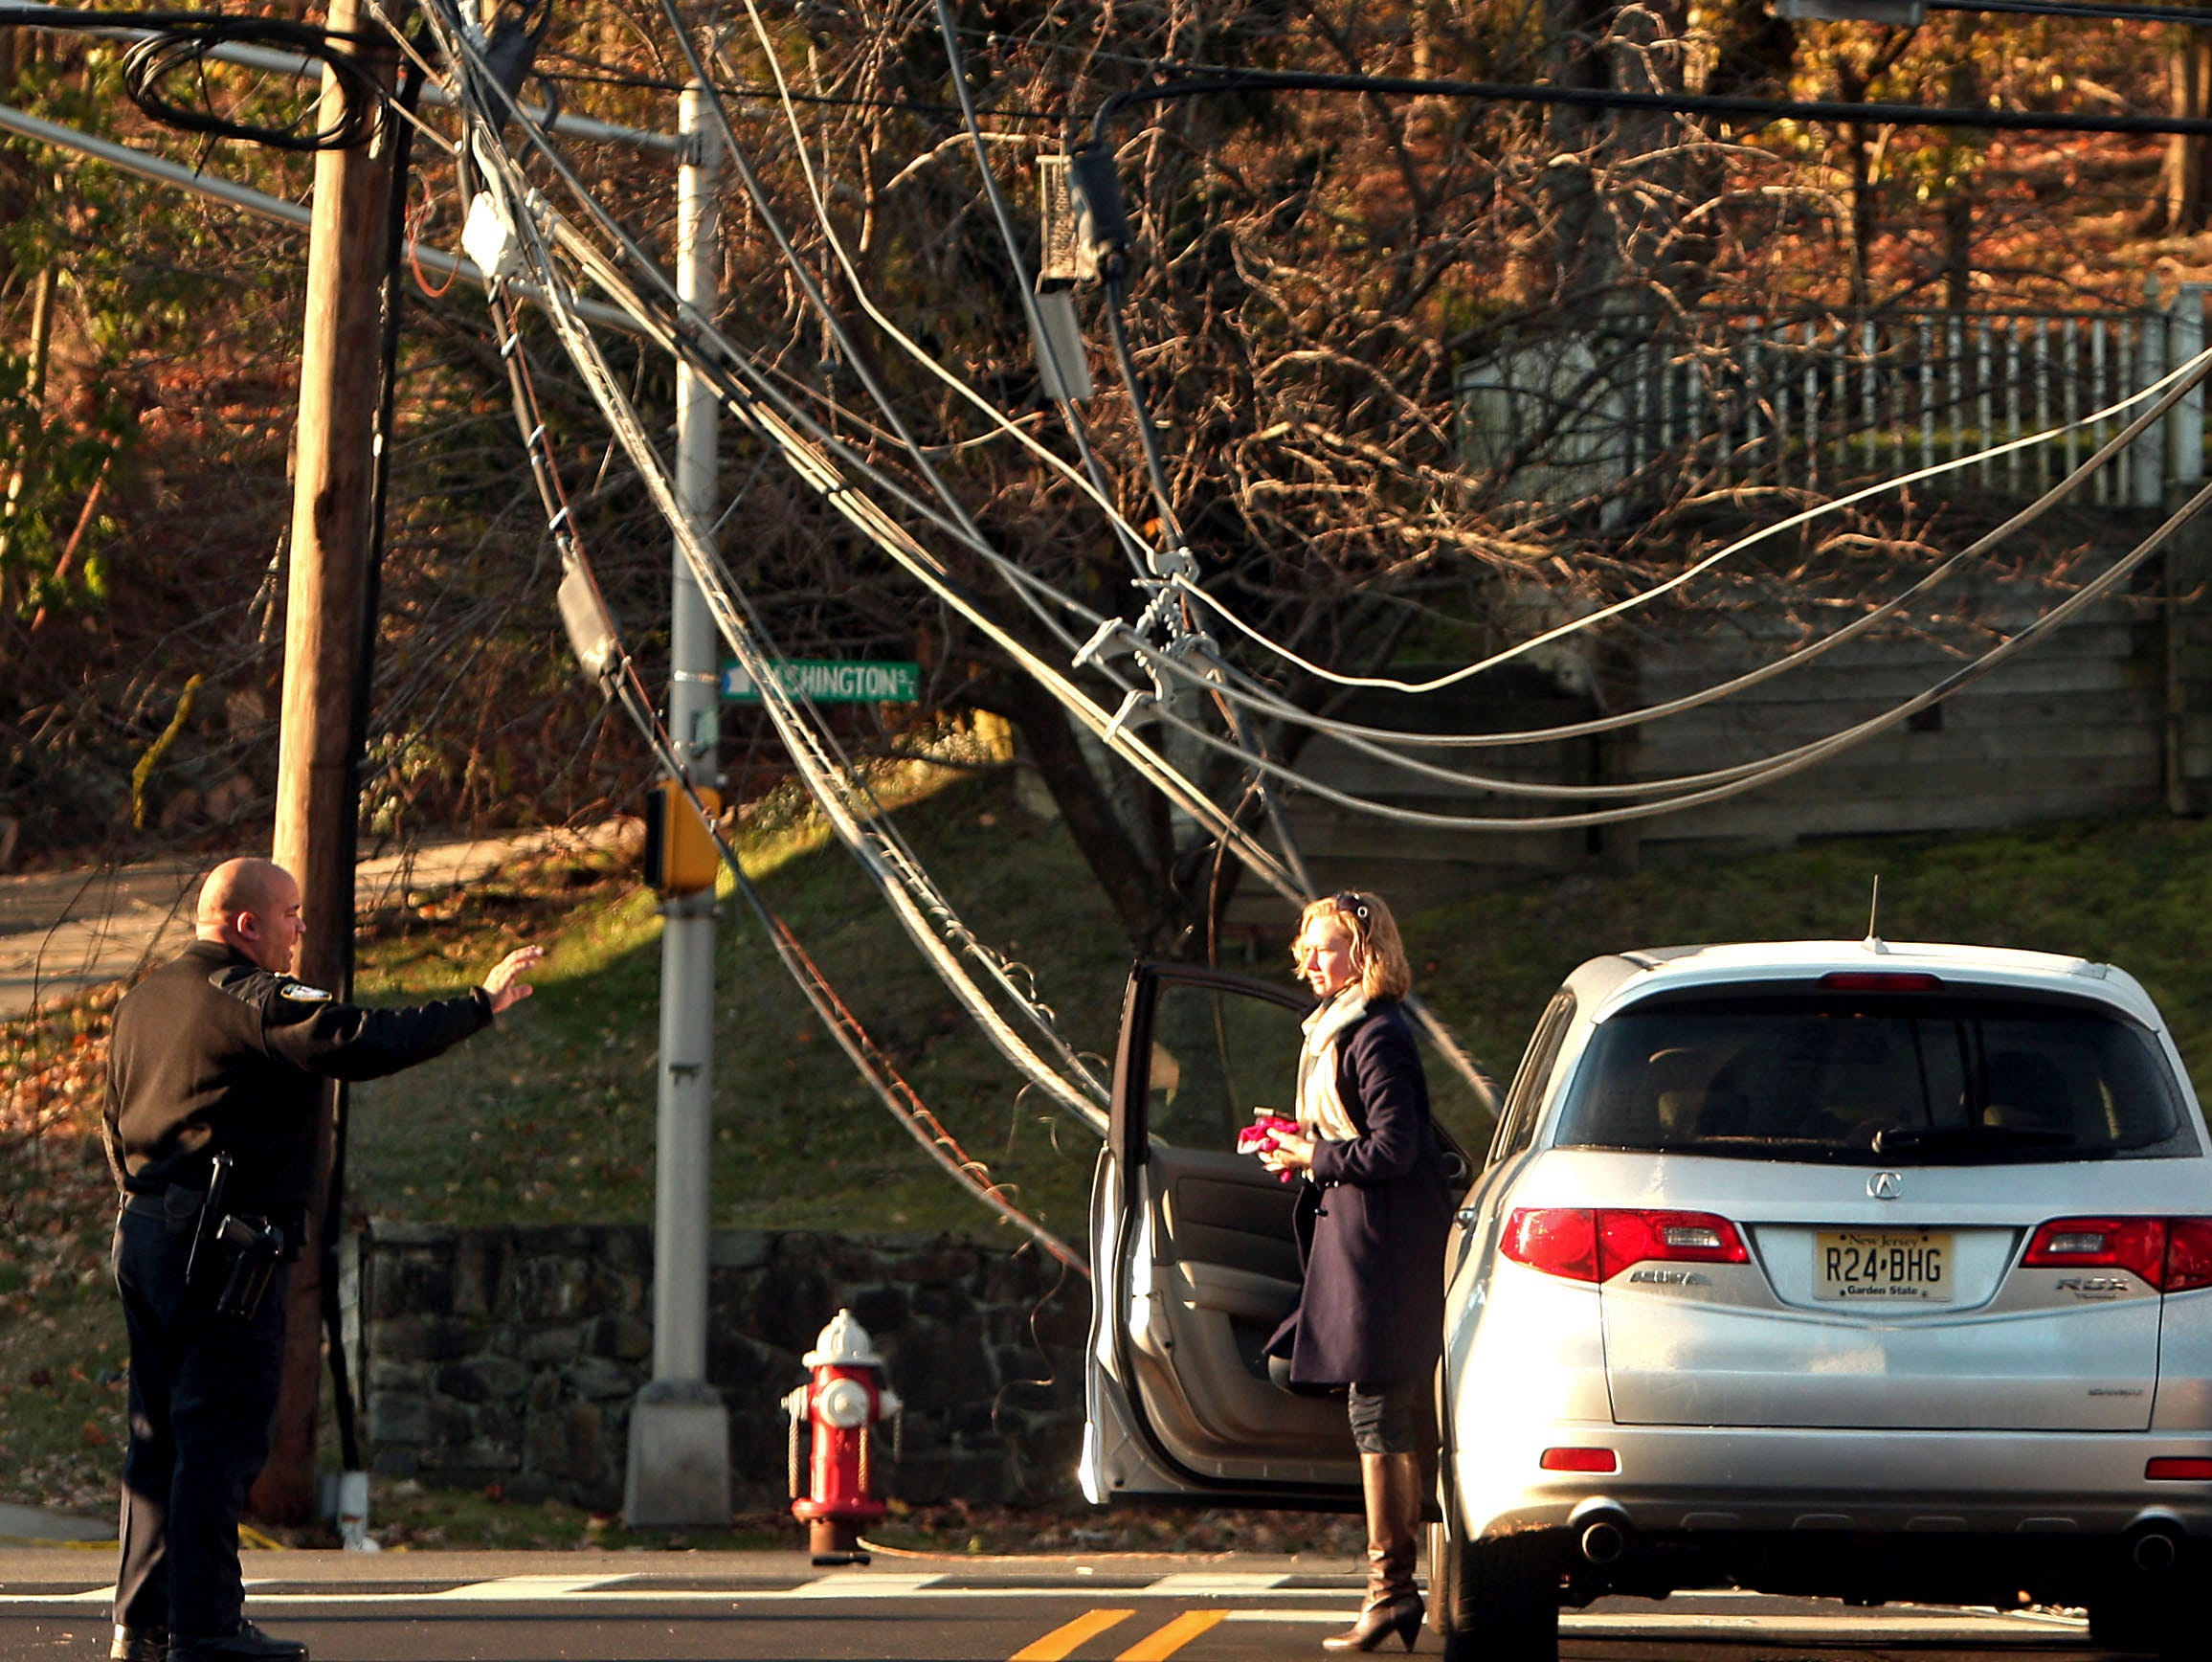 Morristown, N.J.- November 6, 2012-- A Morristown Police Officer talks to a woman carefully exiting her car after an early morning accident that left two cars draped in power lines on Washington Street in Morristown.